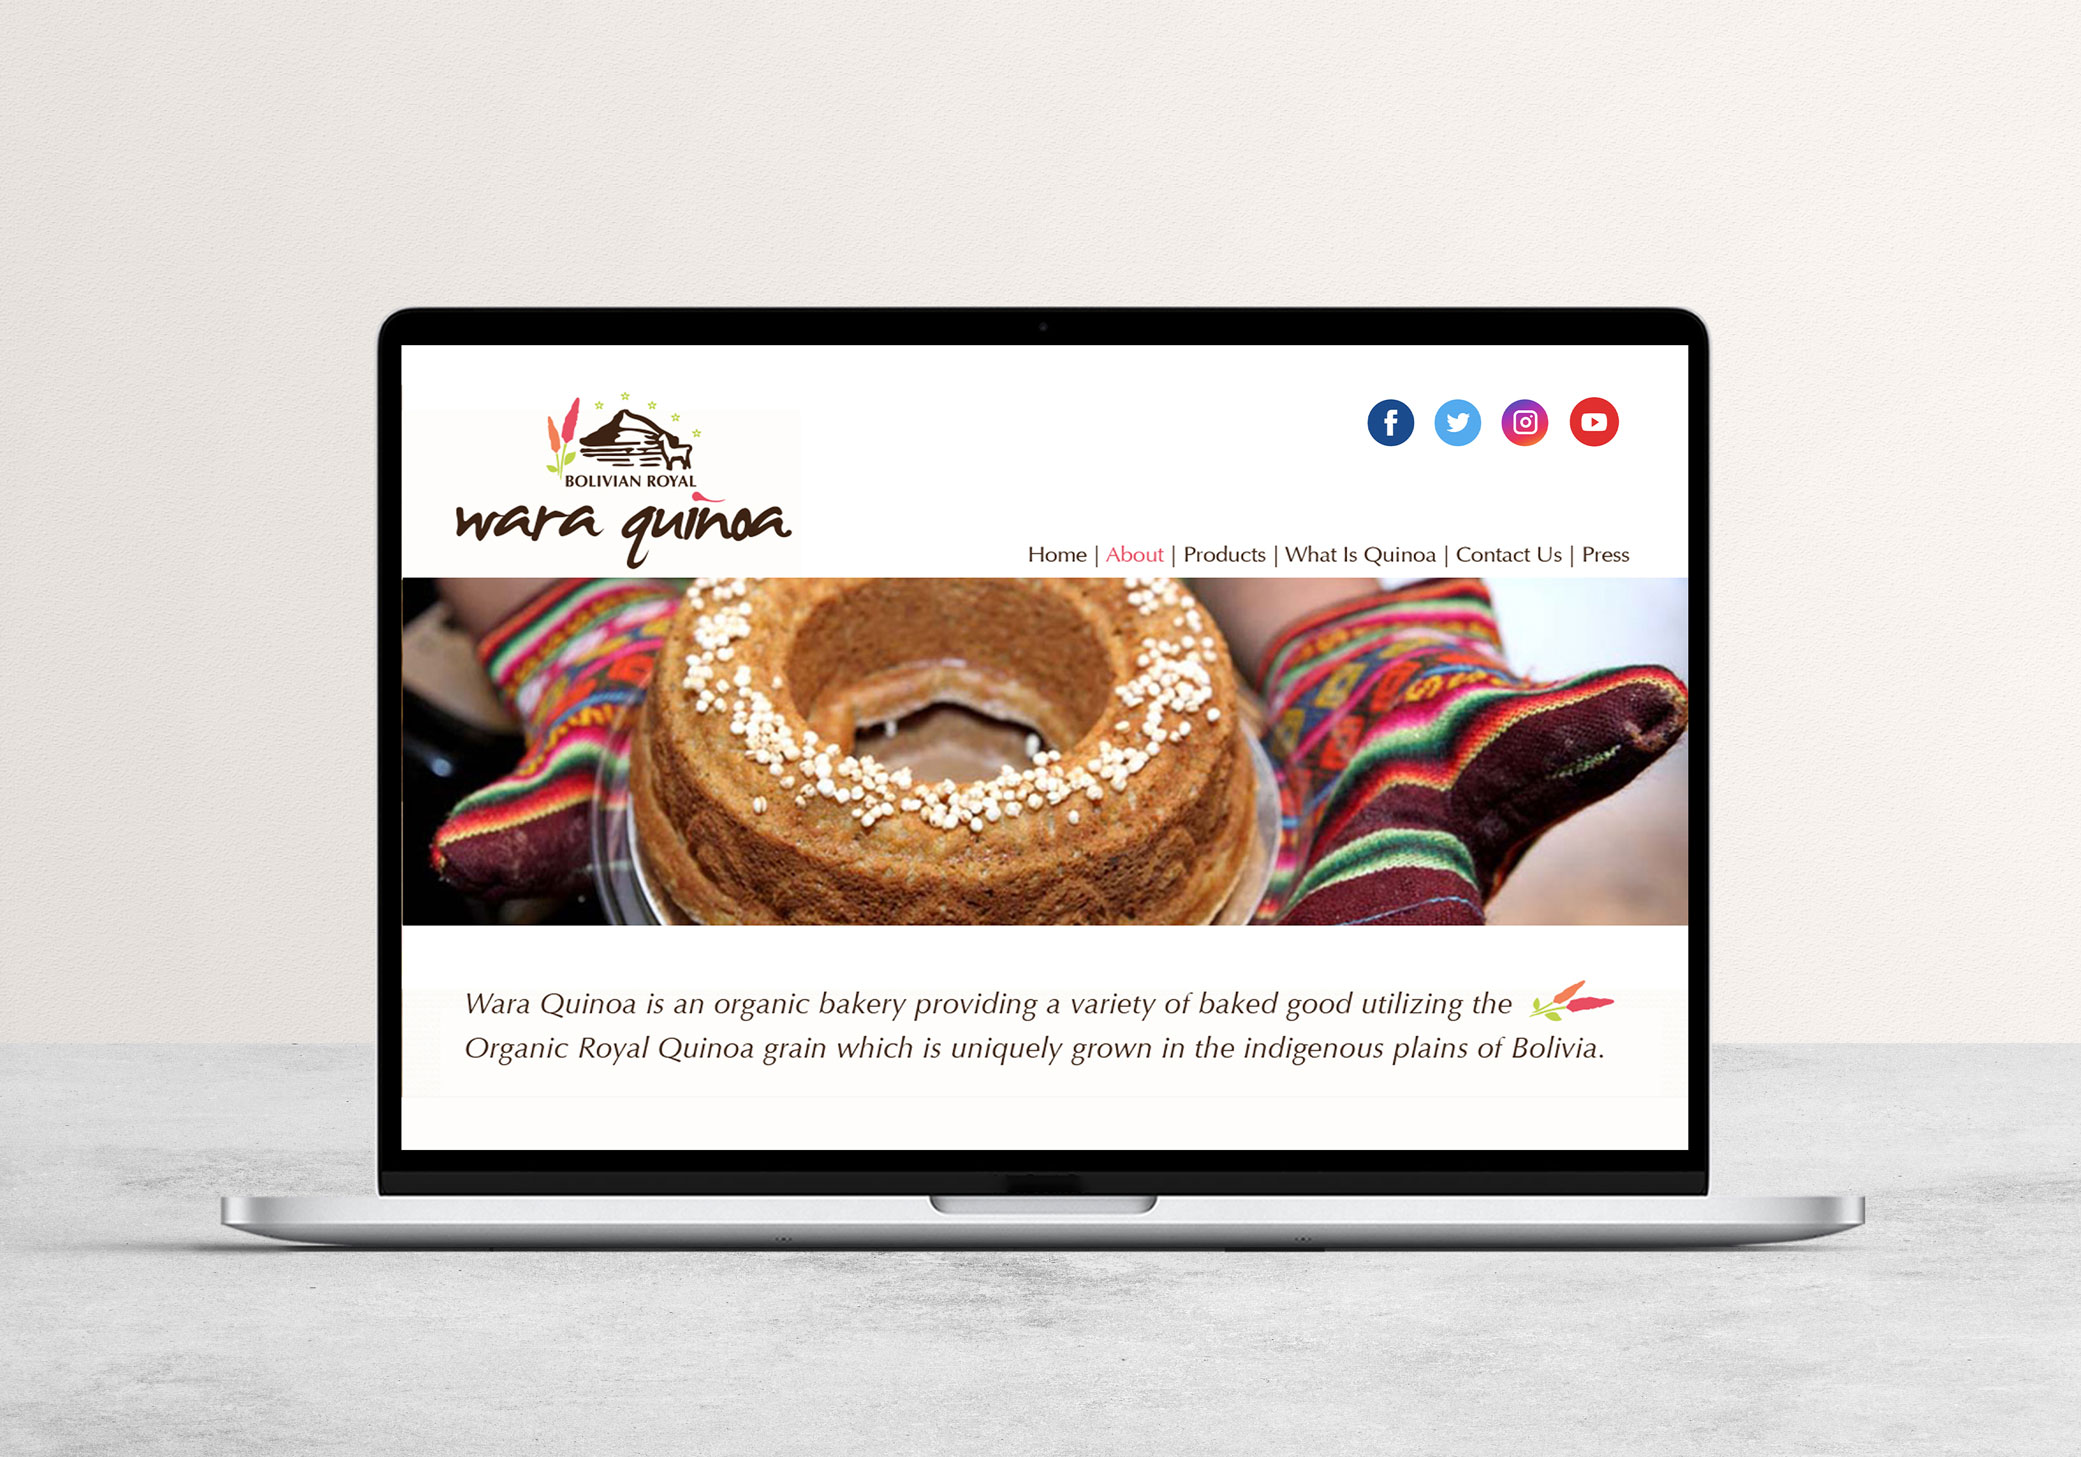 Wara Quinoa website design with natural and healthy elements and vivid colors evoking comfort, energy, and culture.